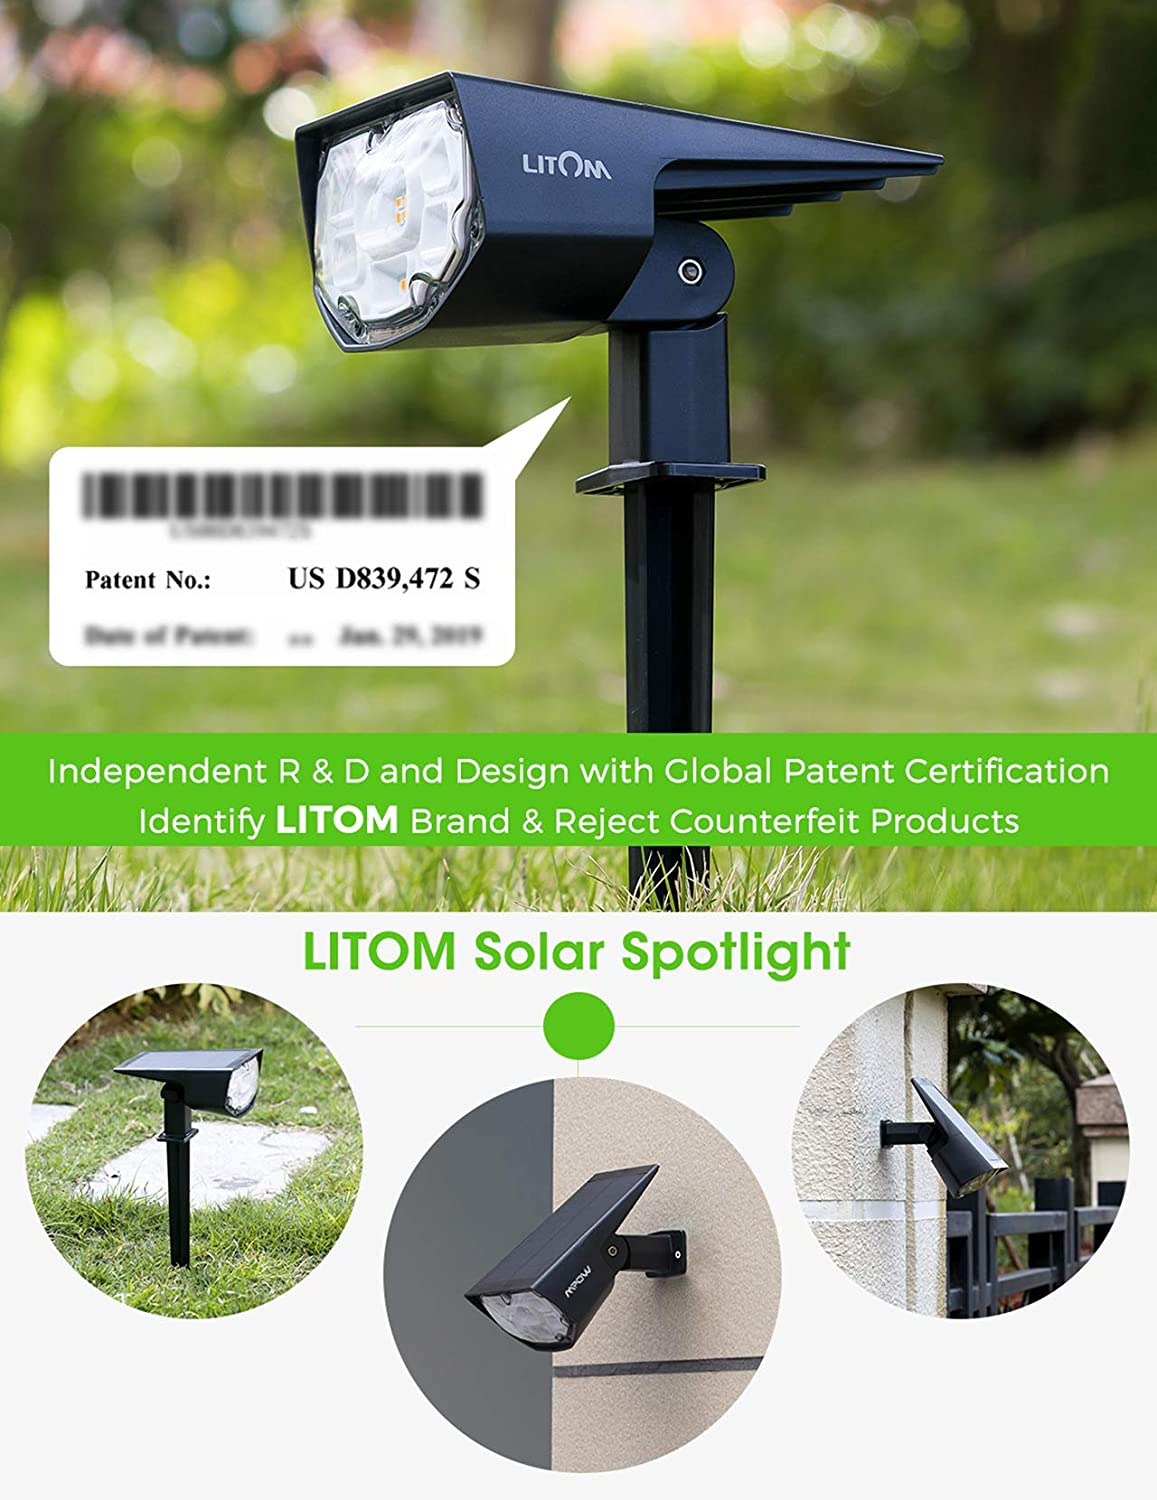 LITOM 12 LEDs Solar Landscape Spotlights, IP67 Waterproof Solar Powered Wall Lights 2-in-1 Wireless Outdoor Solar Landscaping Light for Yard Garden Driveway Porch Walkway Pool Patio 6 Pack Warm White: Home Improvement